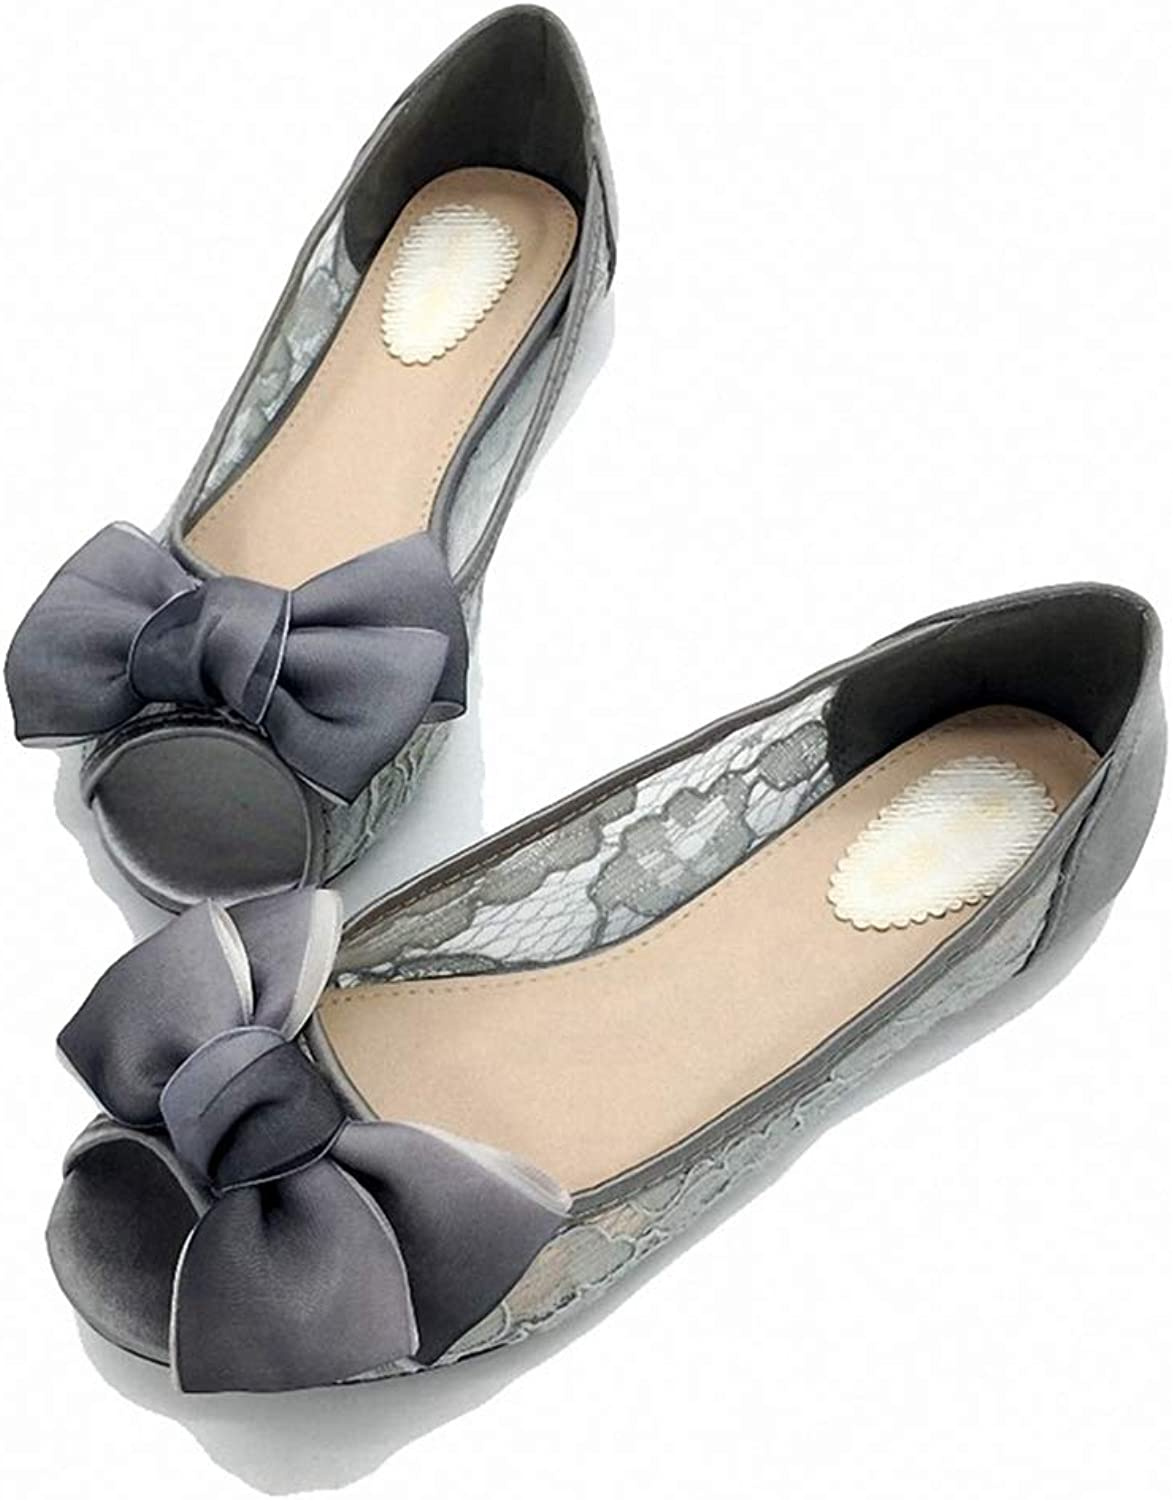 Kyle Walsh Pa Women Ballet Flats shoes Peep Toe Bow-Knot Ladies Lace Stylish Work Driving Footwear